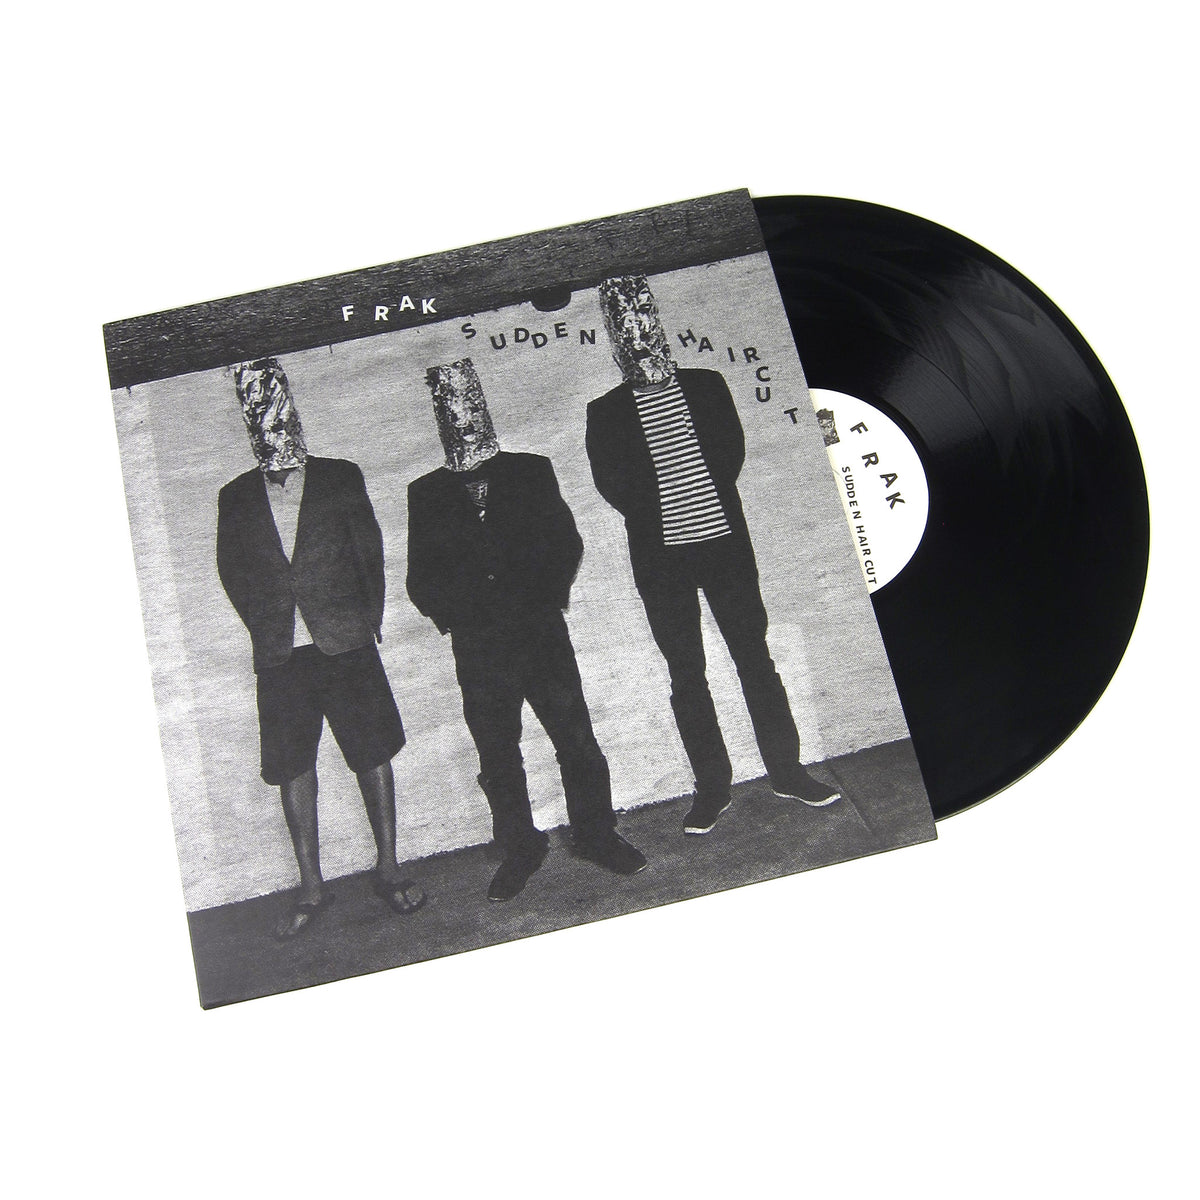 Frak: Sudden Haircut Vinyl 12""